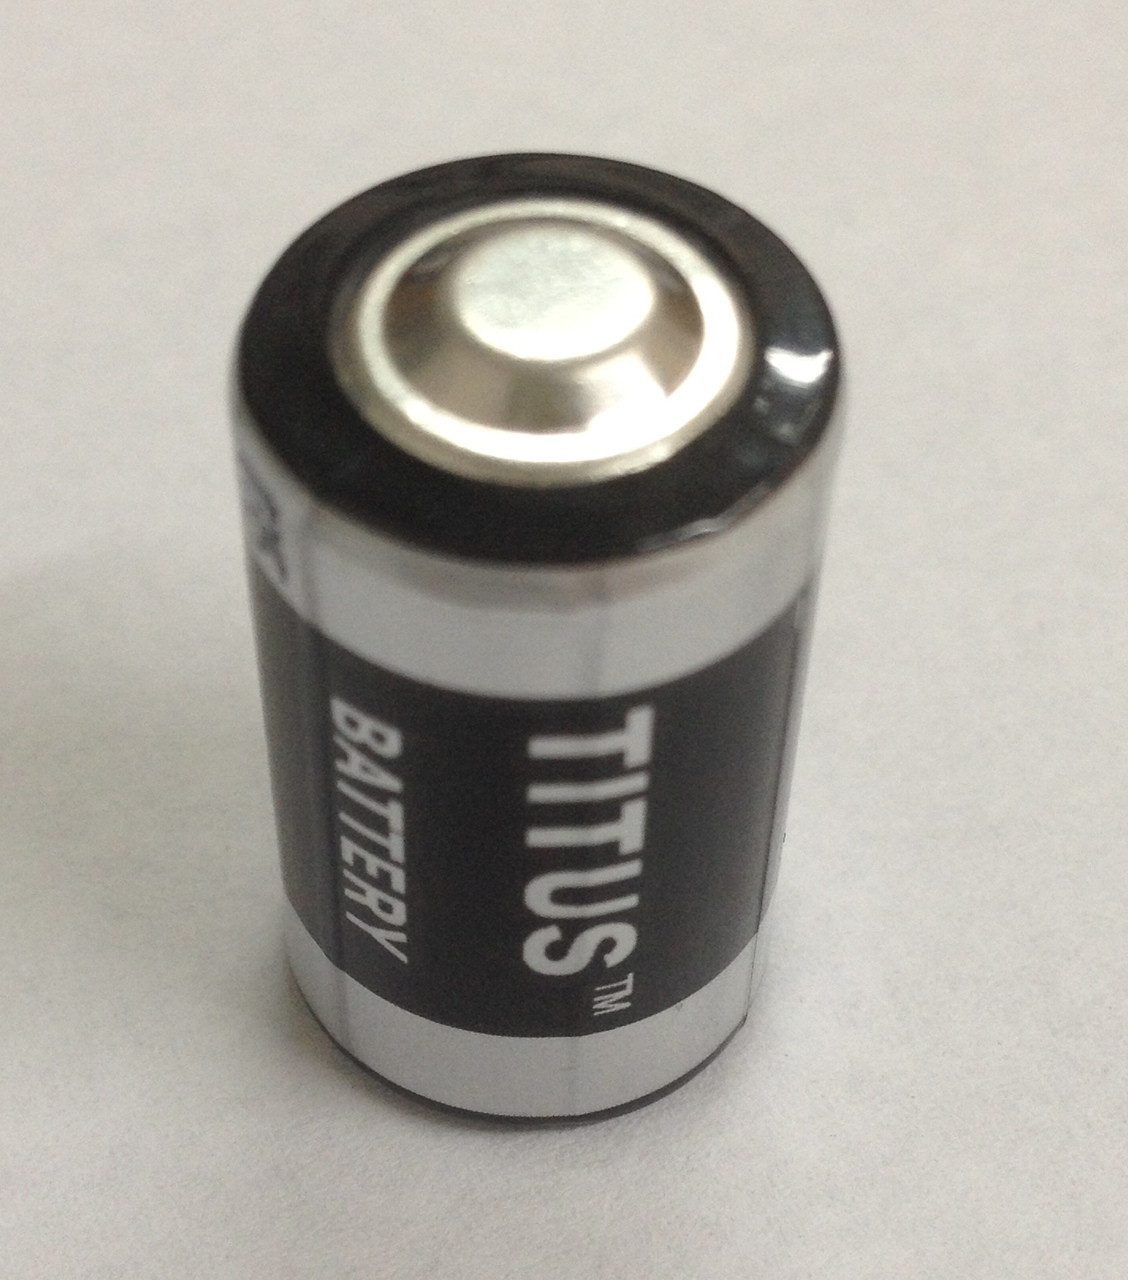 Titus 1/2 AA Size 3.6V ER14250MT High Energy Lithium Battery With Solder Tabs - 1 Pack + Free Shipping!